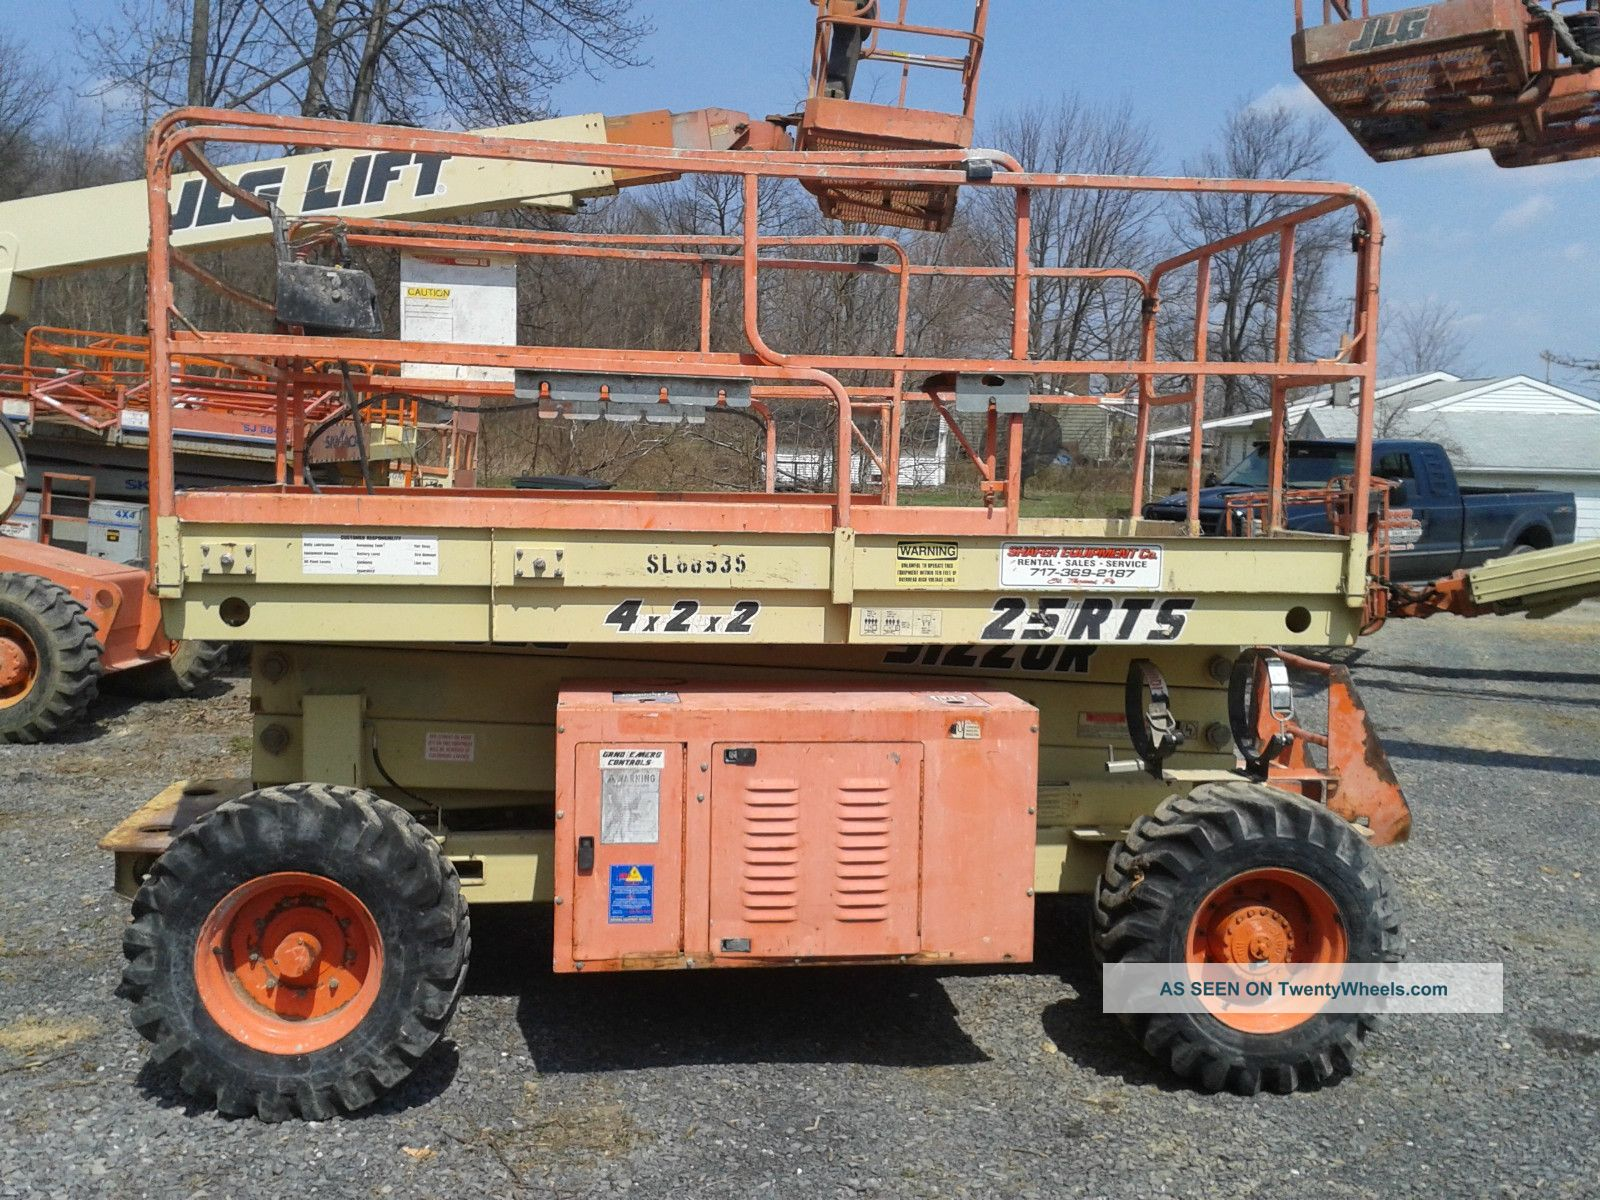 Jlg 25rts Rough Terrain Scissor Lift Aerial Work Platform Genie Skyjack Lifts photo